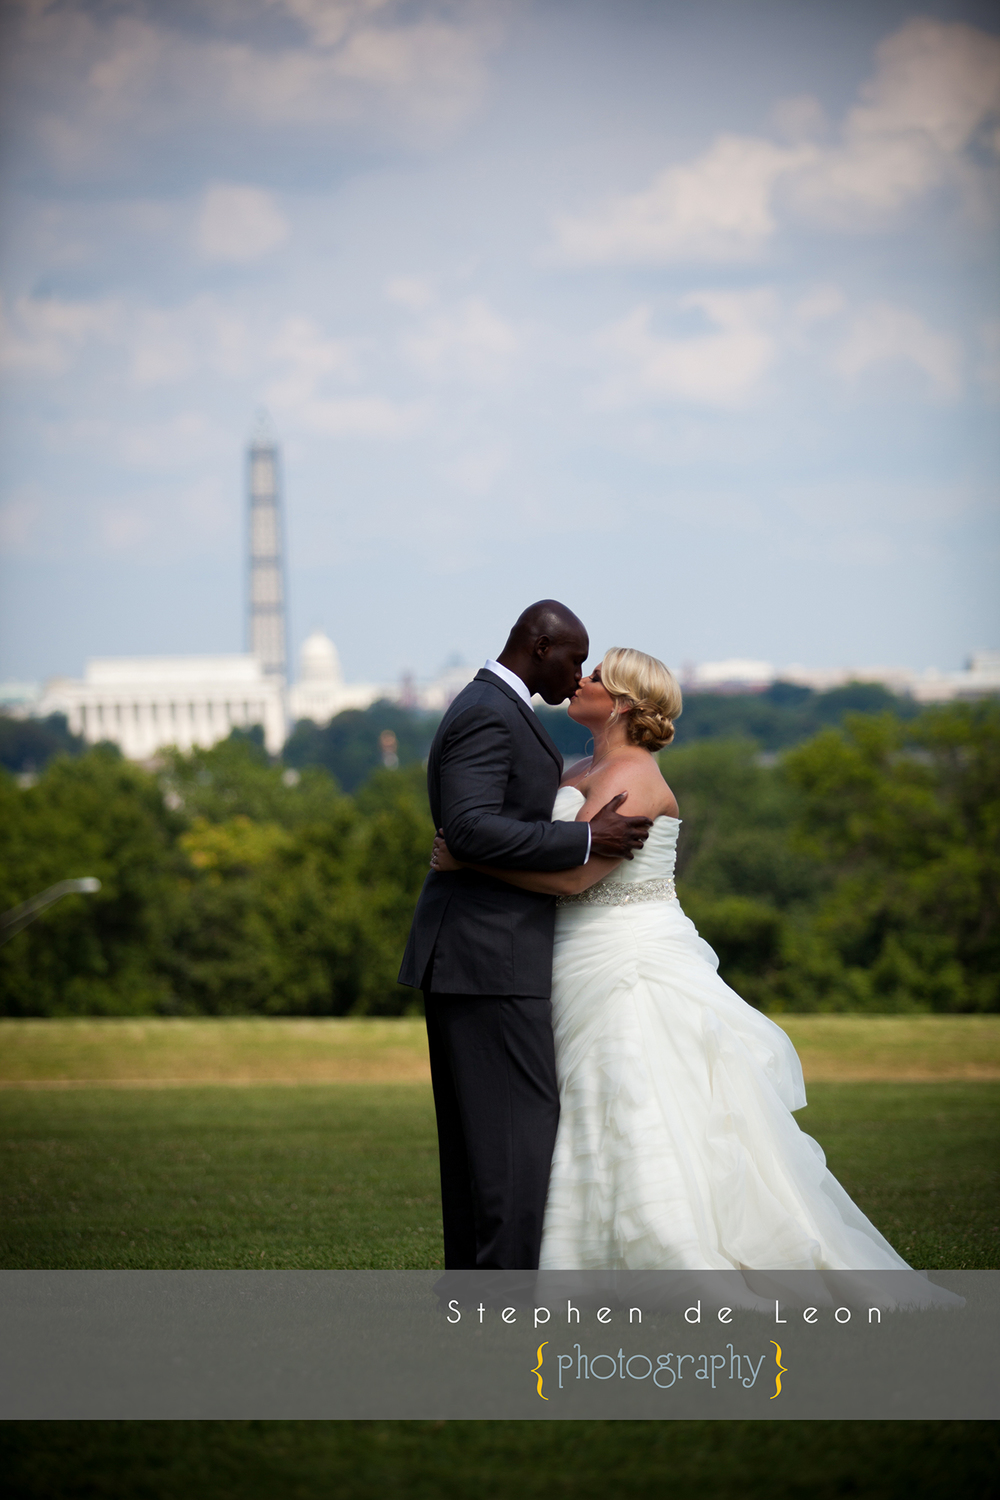 Stephen_de_Leon_Key_Bridge_Marriott_Wedding_Photography007.jpg